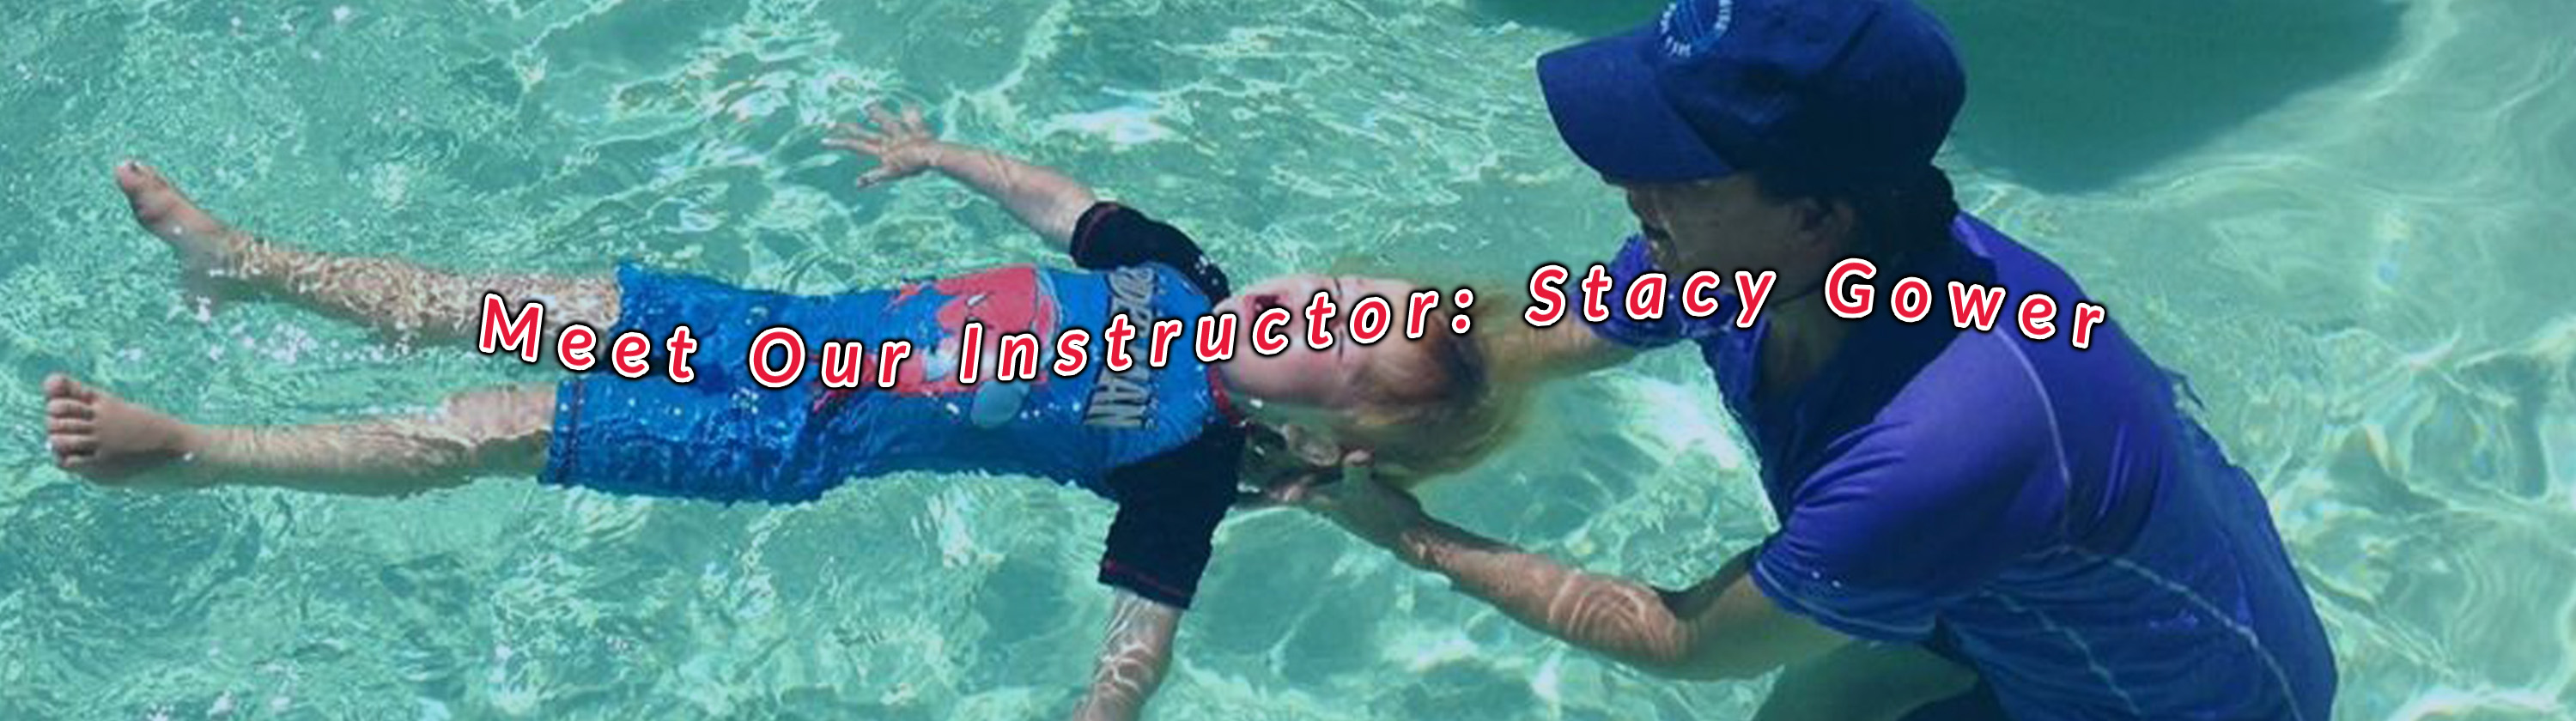 Waterwise_Infant_Aquatics_Survival_Swim_Swimming_Lessons_Perth_instructor_stacy_gower_2